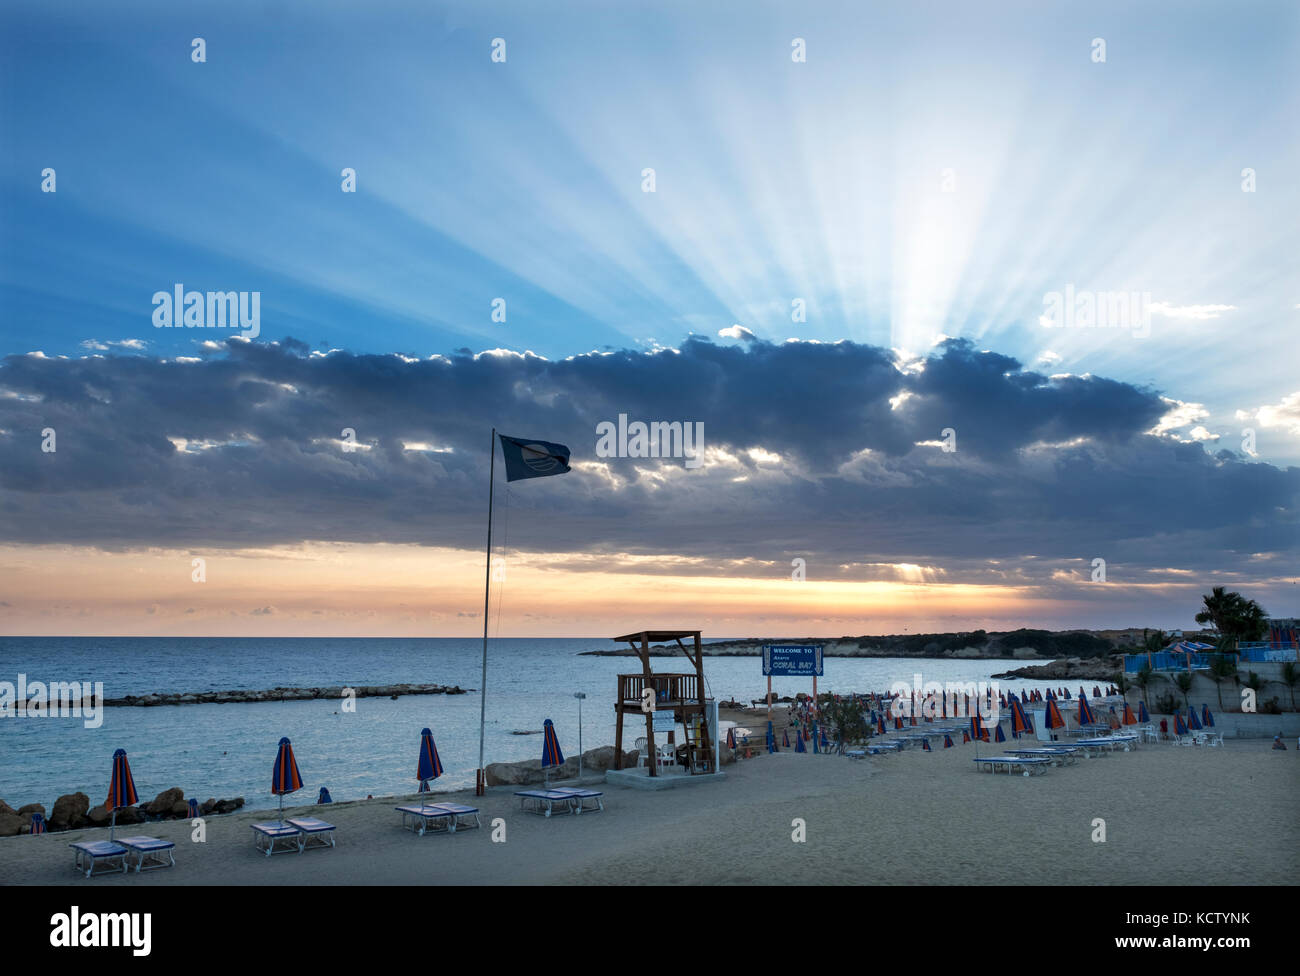 Sunrays burst through from behind the clouds at Coral Bay in the Peyia district, near Paphos, Cyprus. - Stock Image